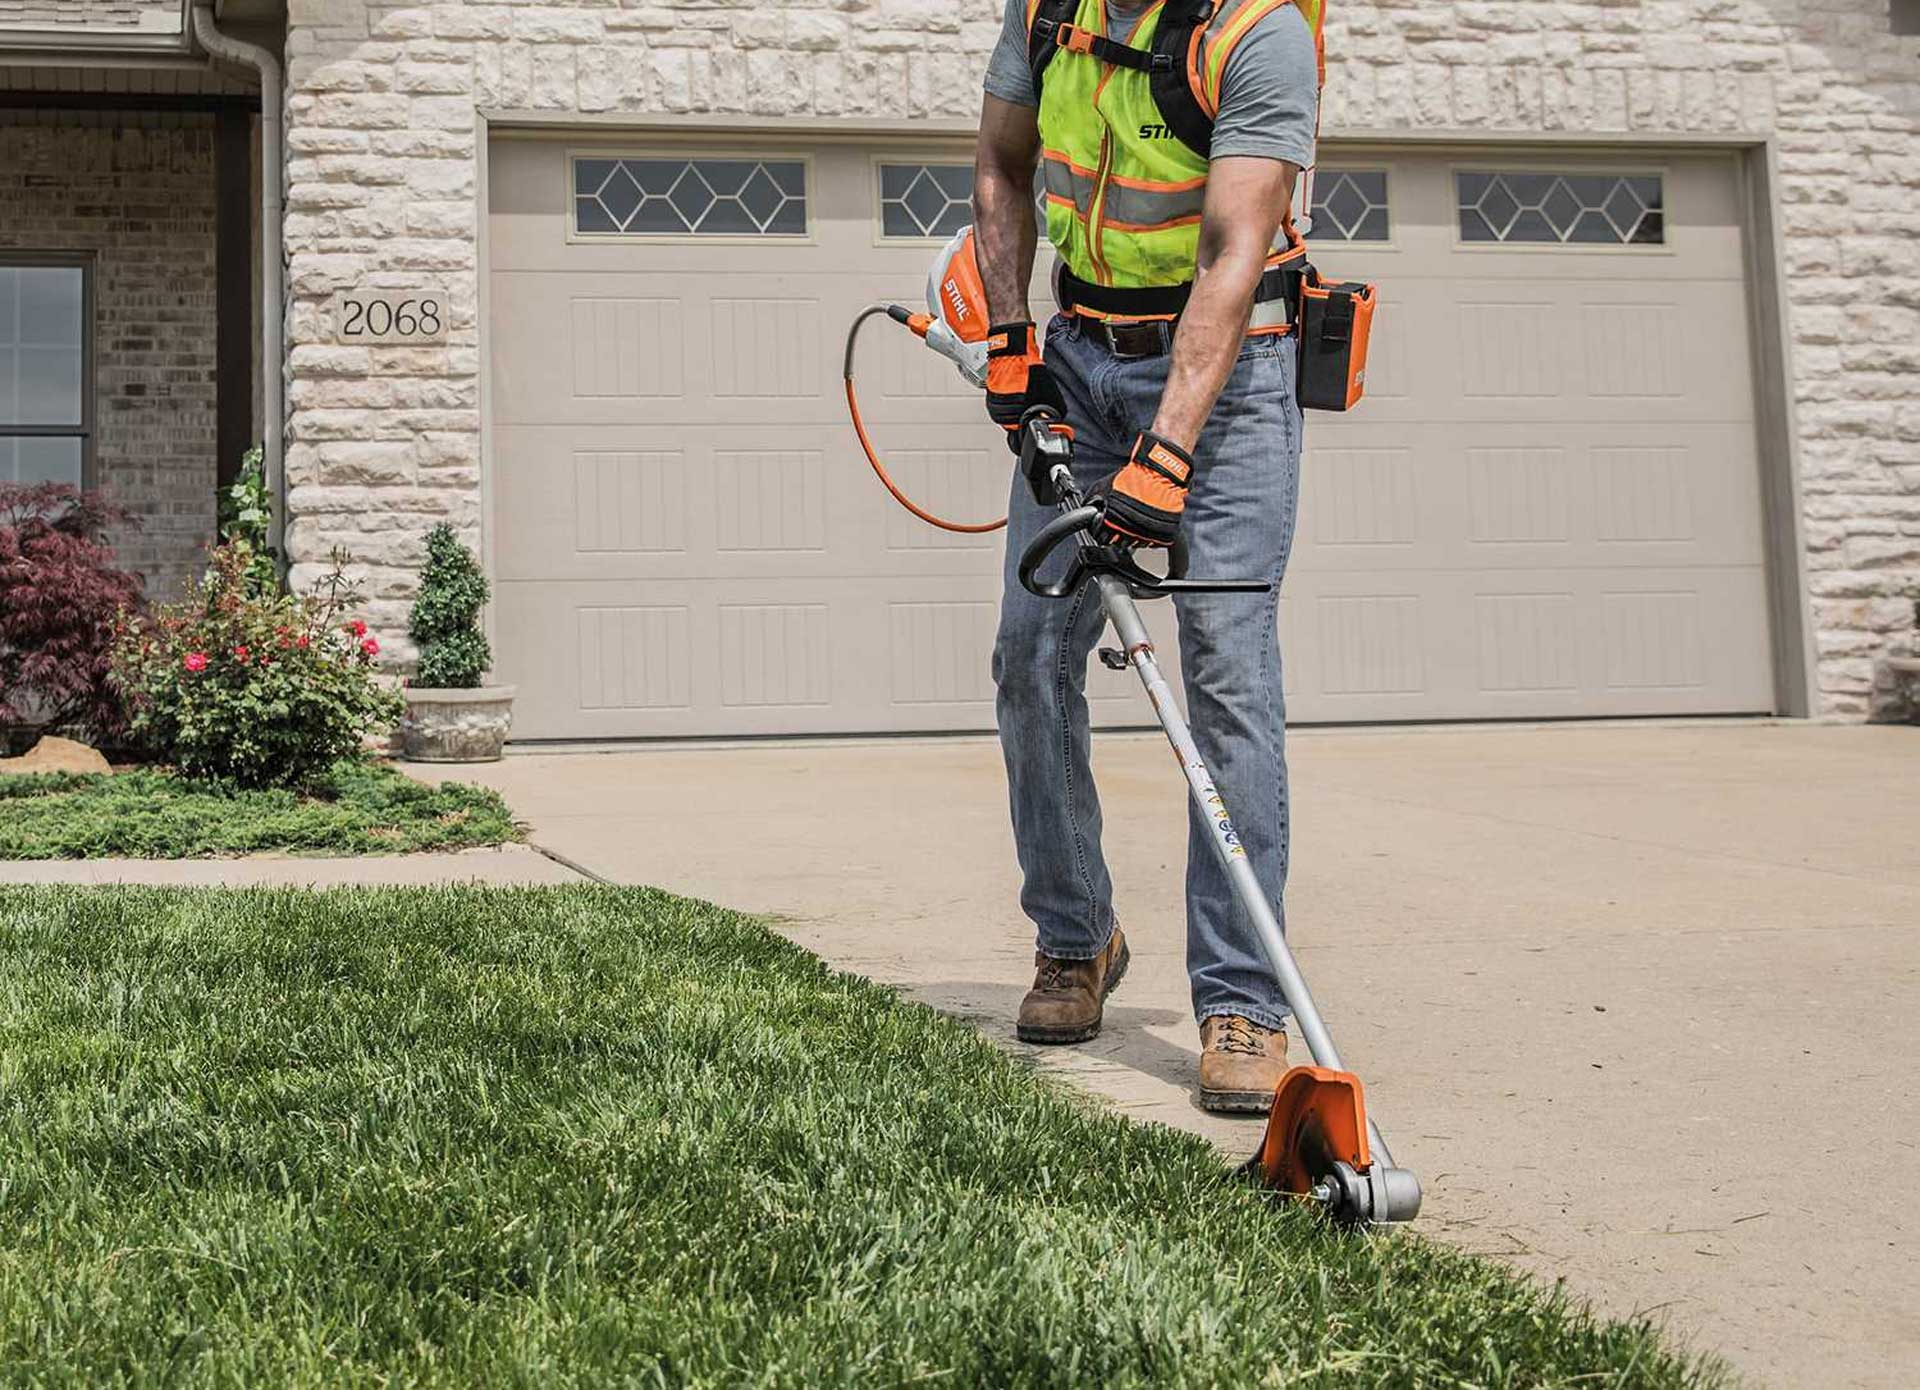 The 12 Best Lawn Edgers in 2020 Reviews and Buyers Guides